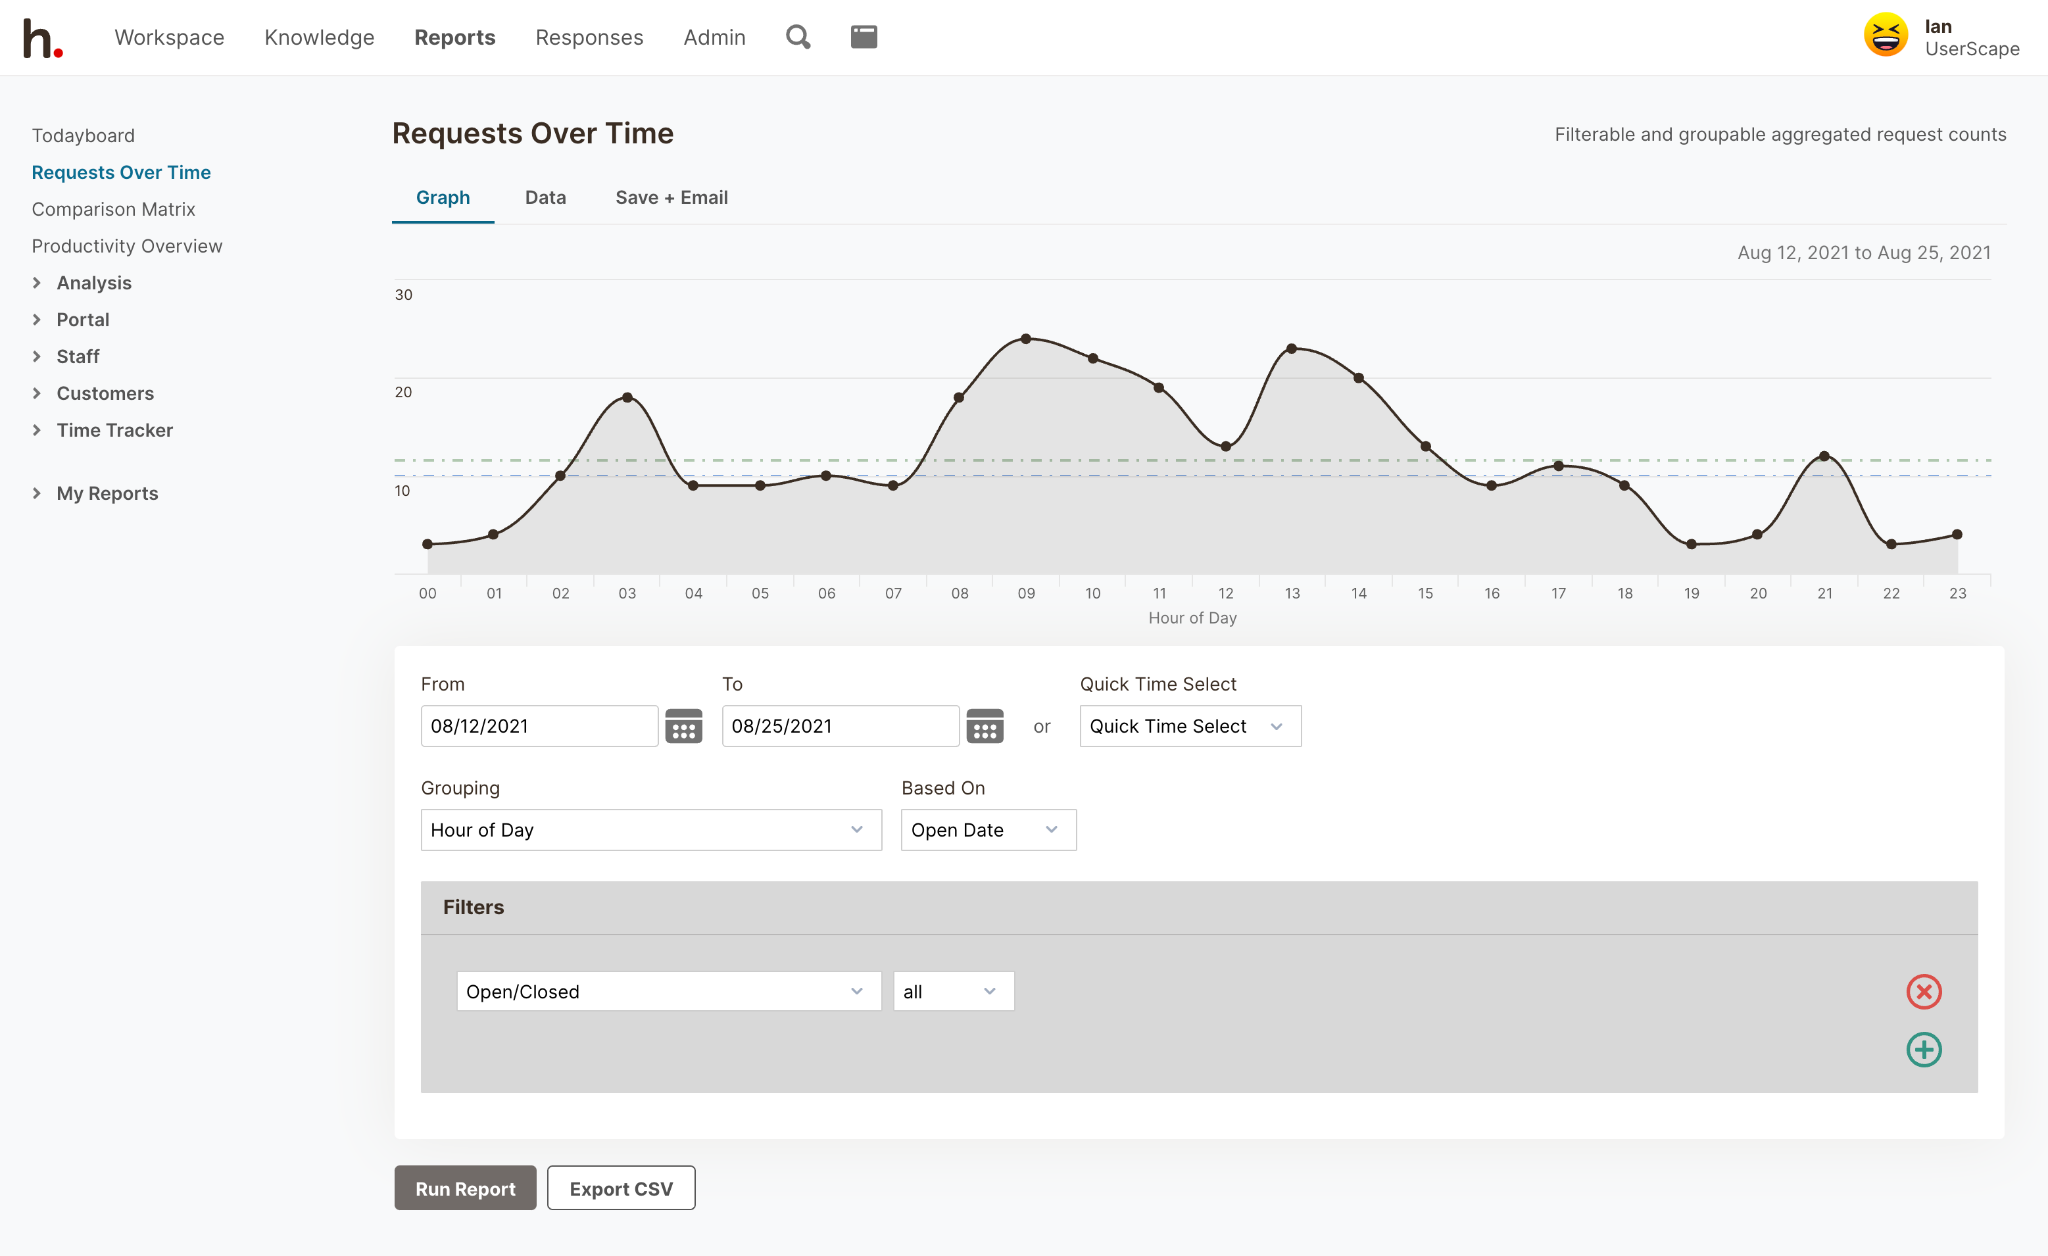 HelpSpot's Requests Over Time Analytics